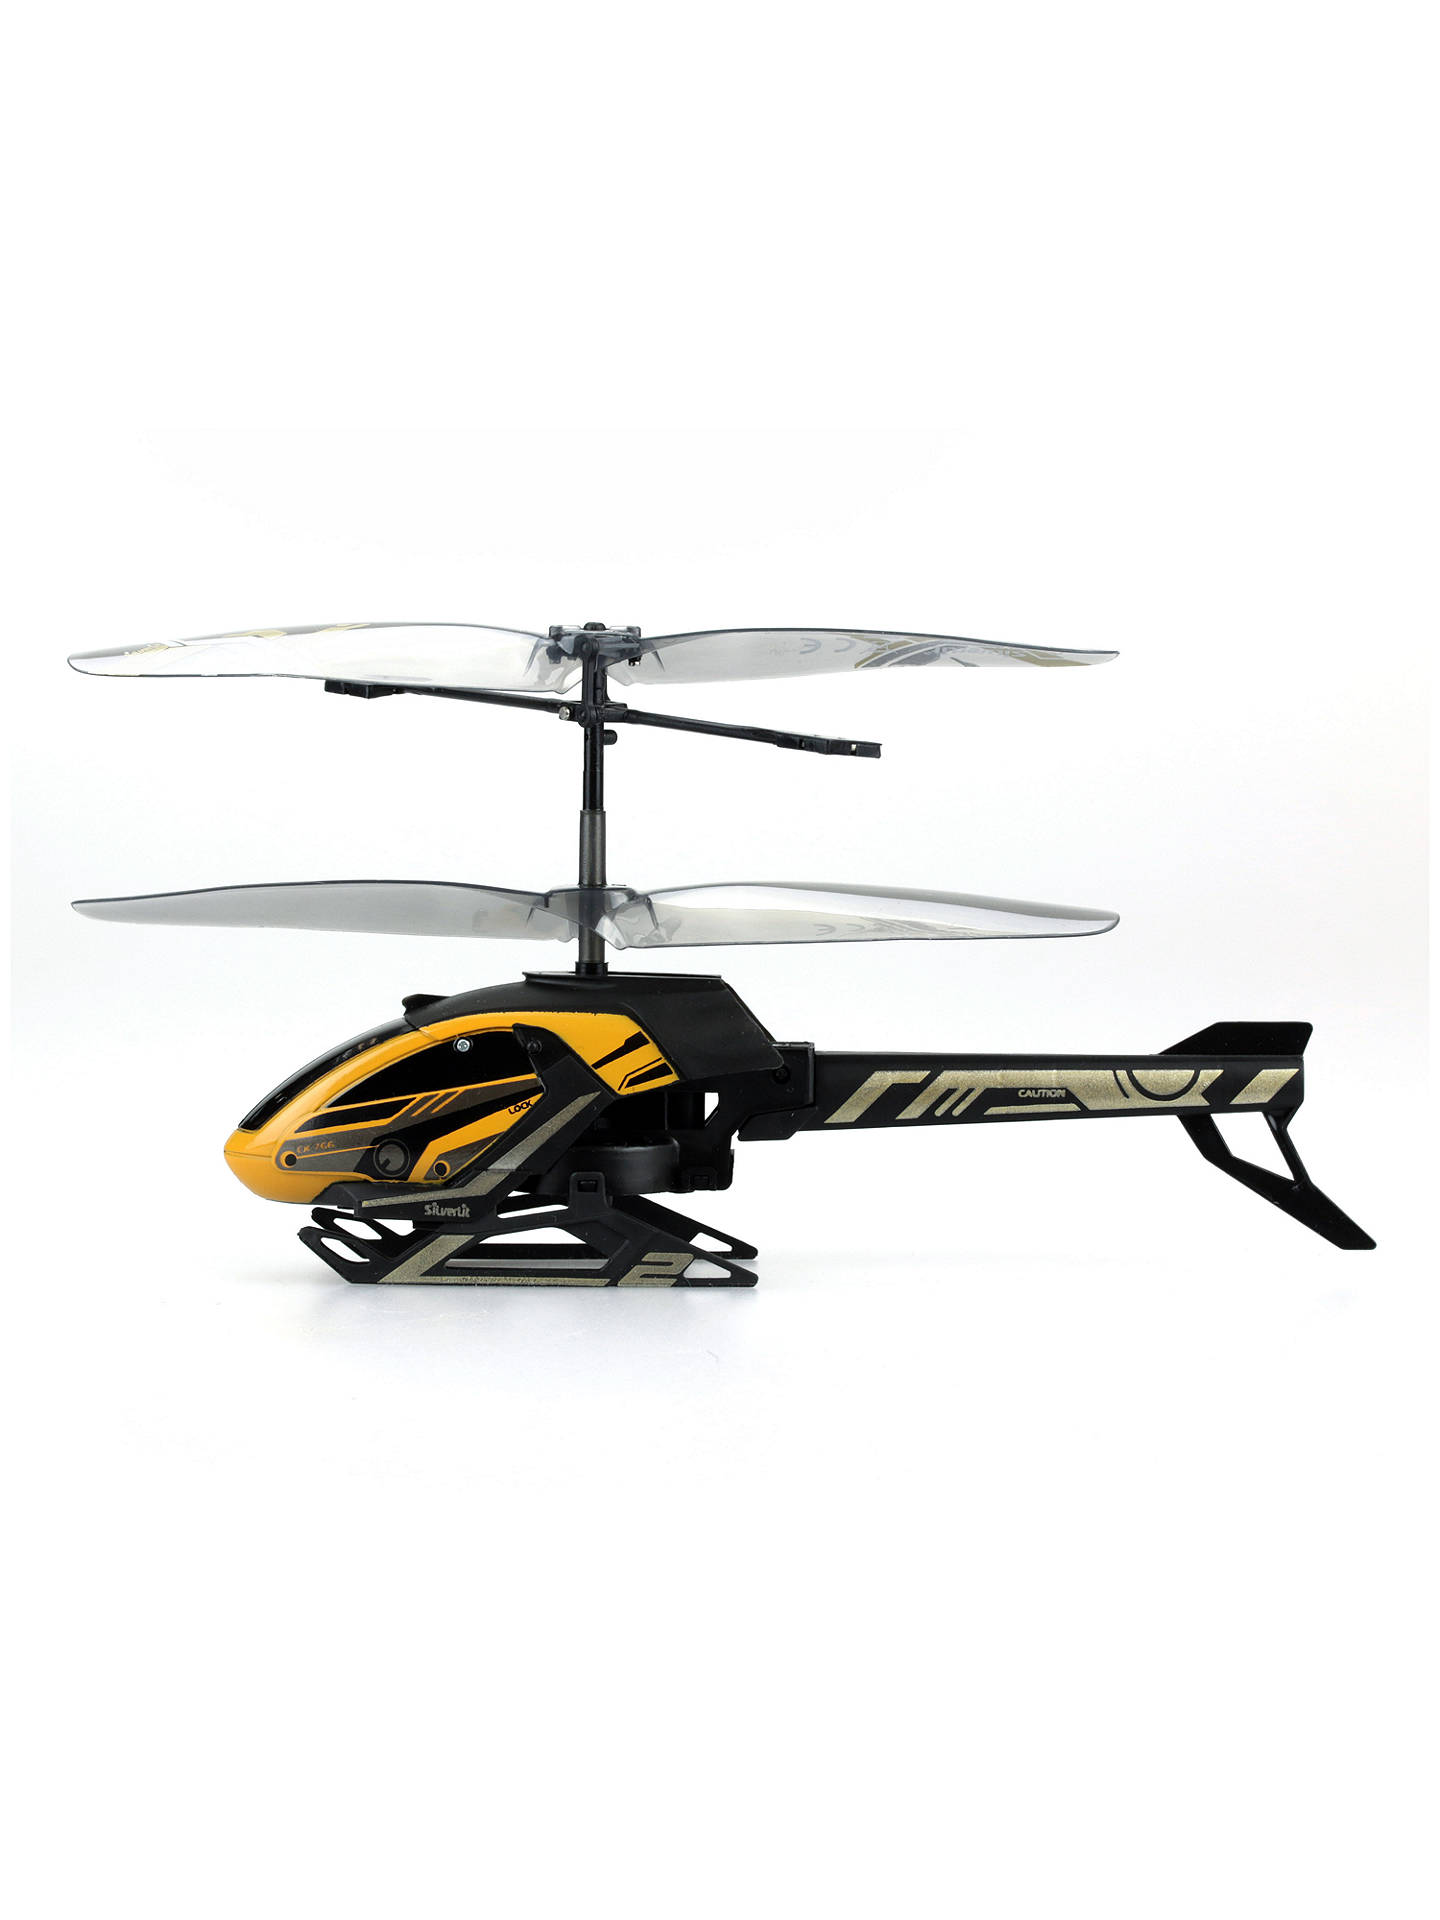 BuySilverlit Infra Red Scorpion Helicopter Online at johnlewis.com